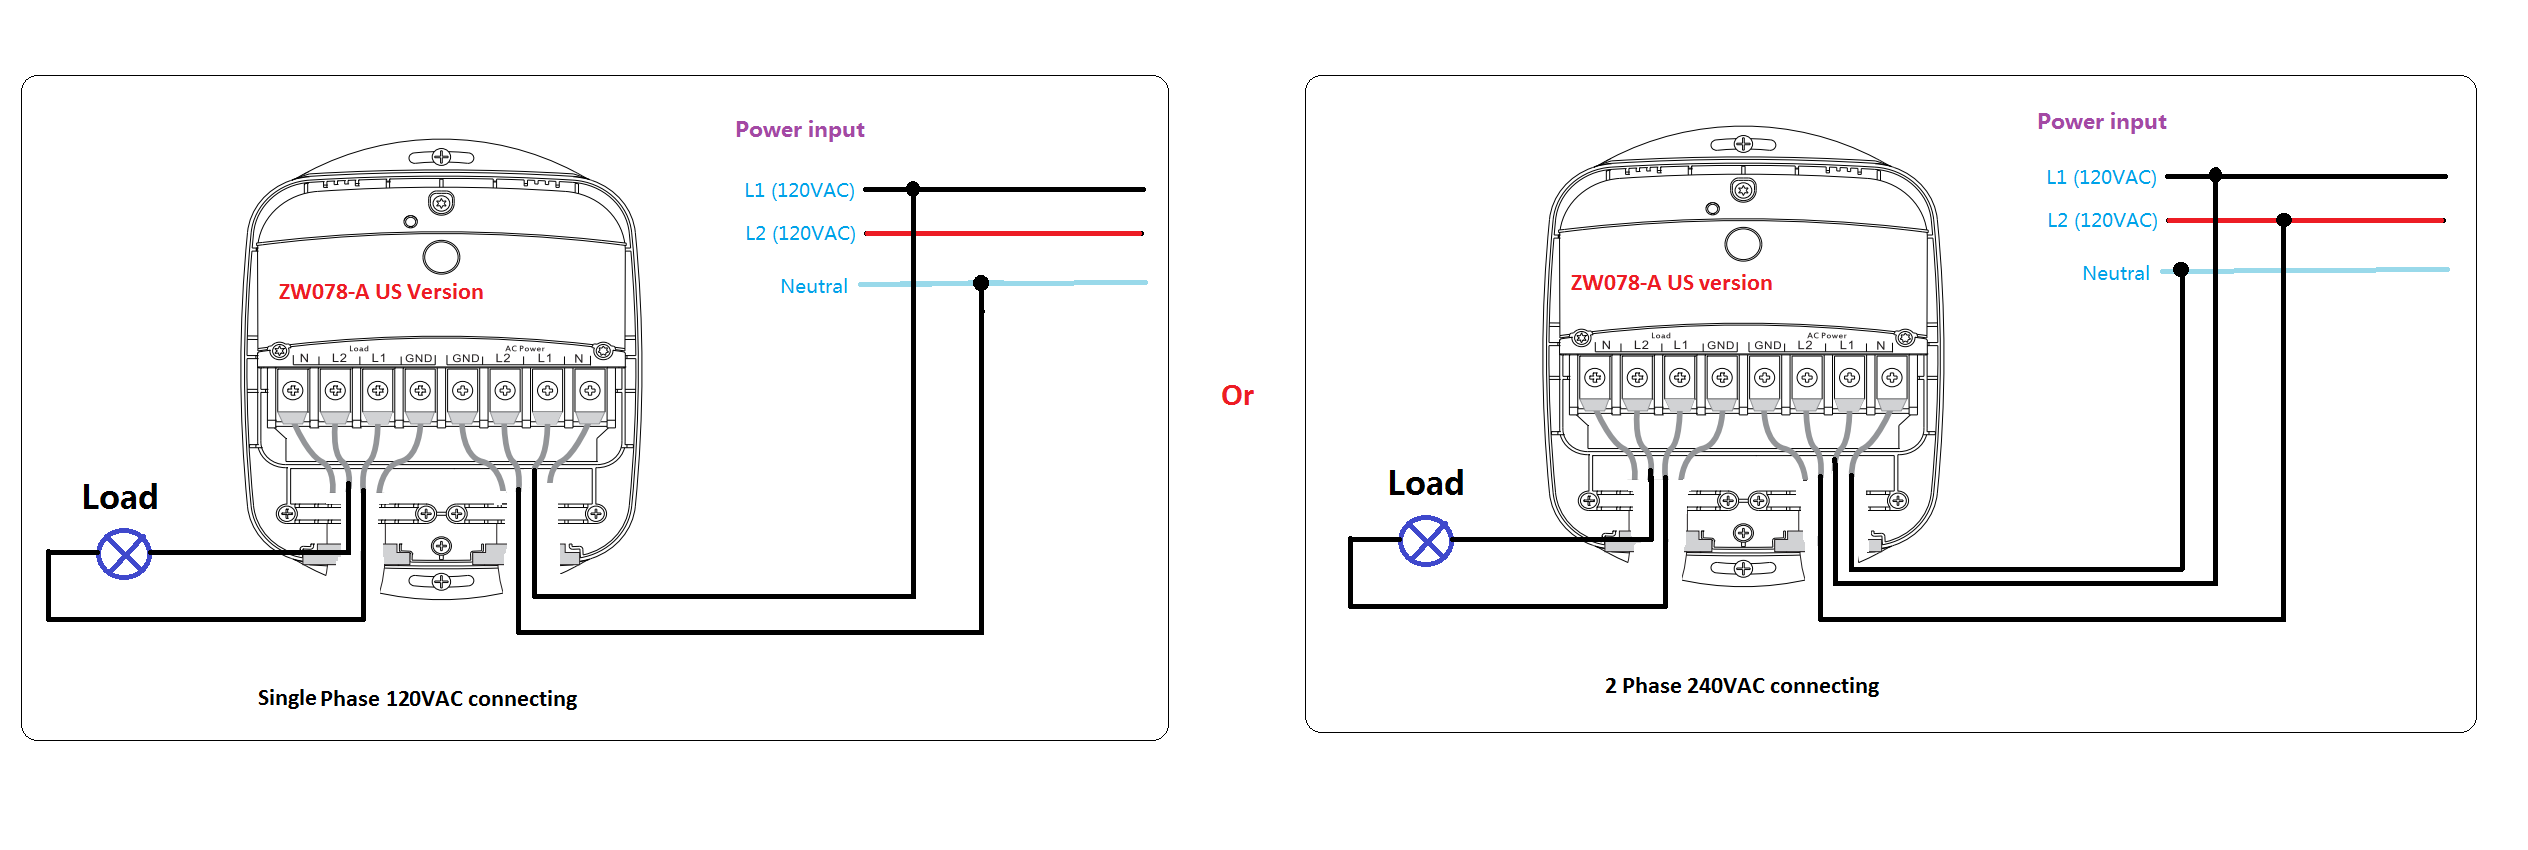 Heavy Duty Smart Switch Gen5 wiring diagrams. : Aeotec by Aeon Labs